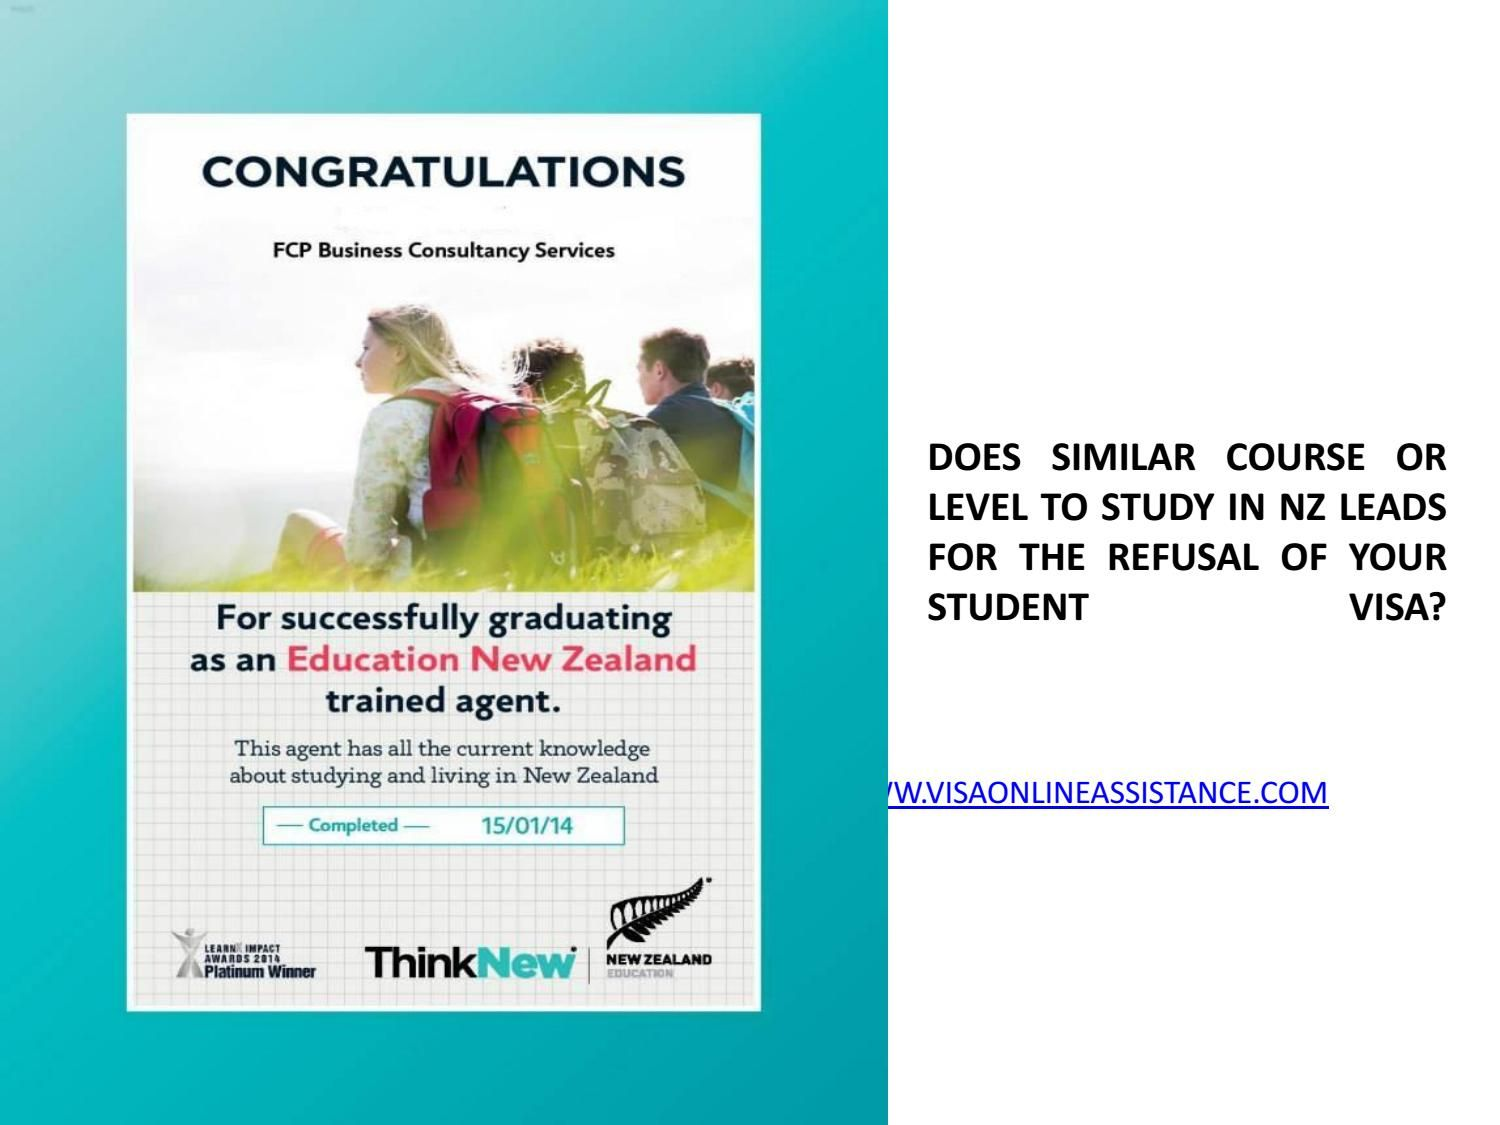 Reapplication After Refusal Of Student Visa In Nz What Are Your